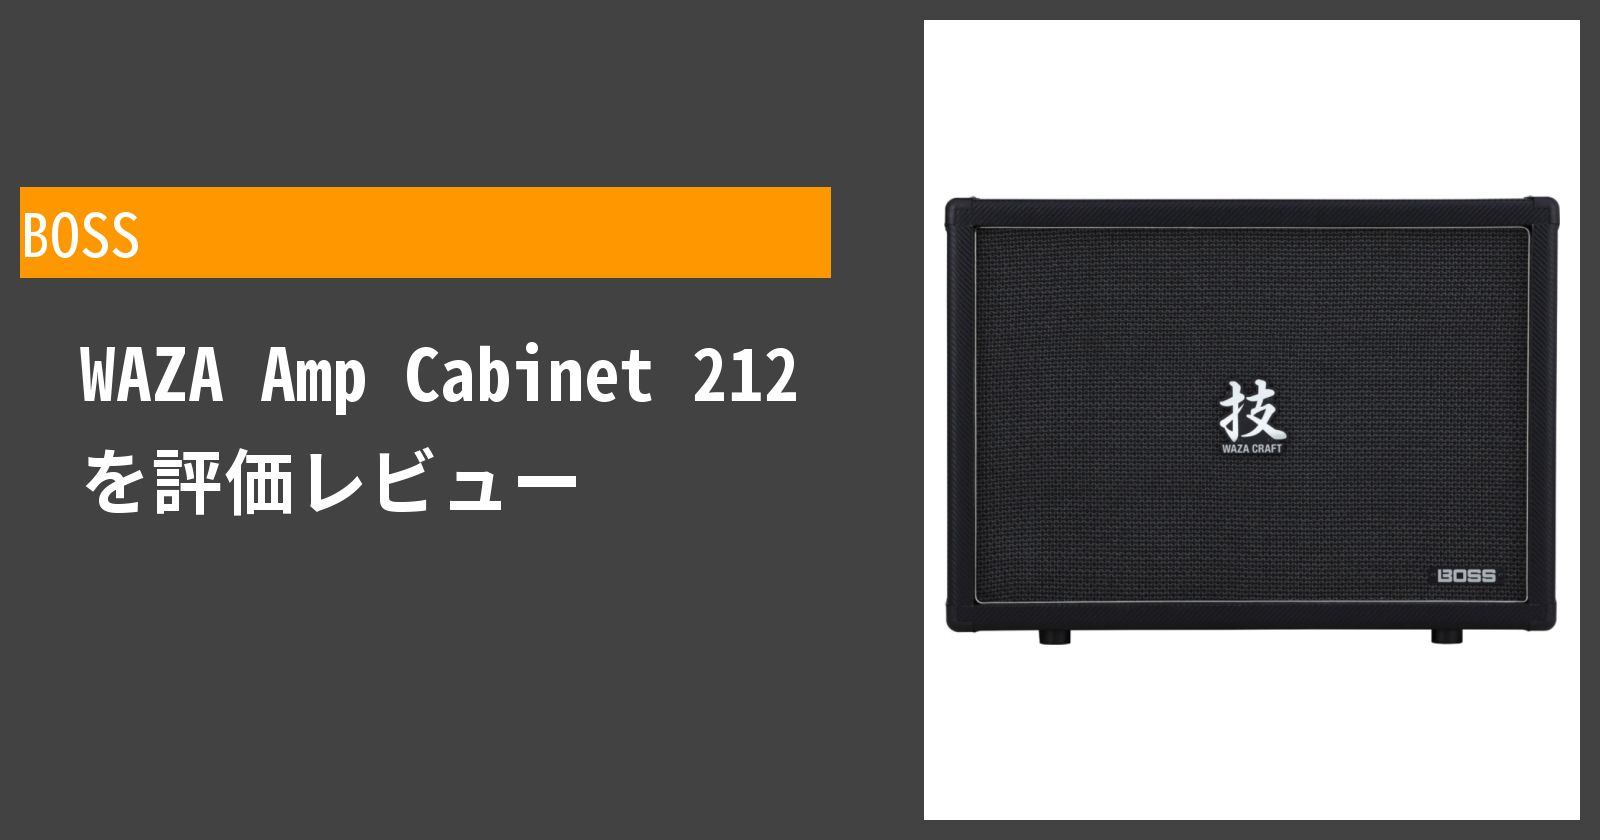 WAZA Amp Cabinet 212を徹底評価